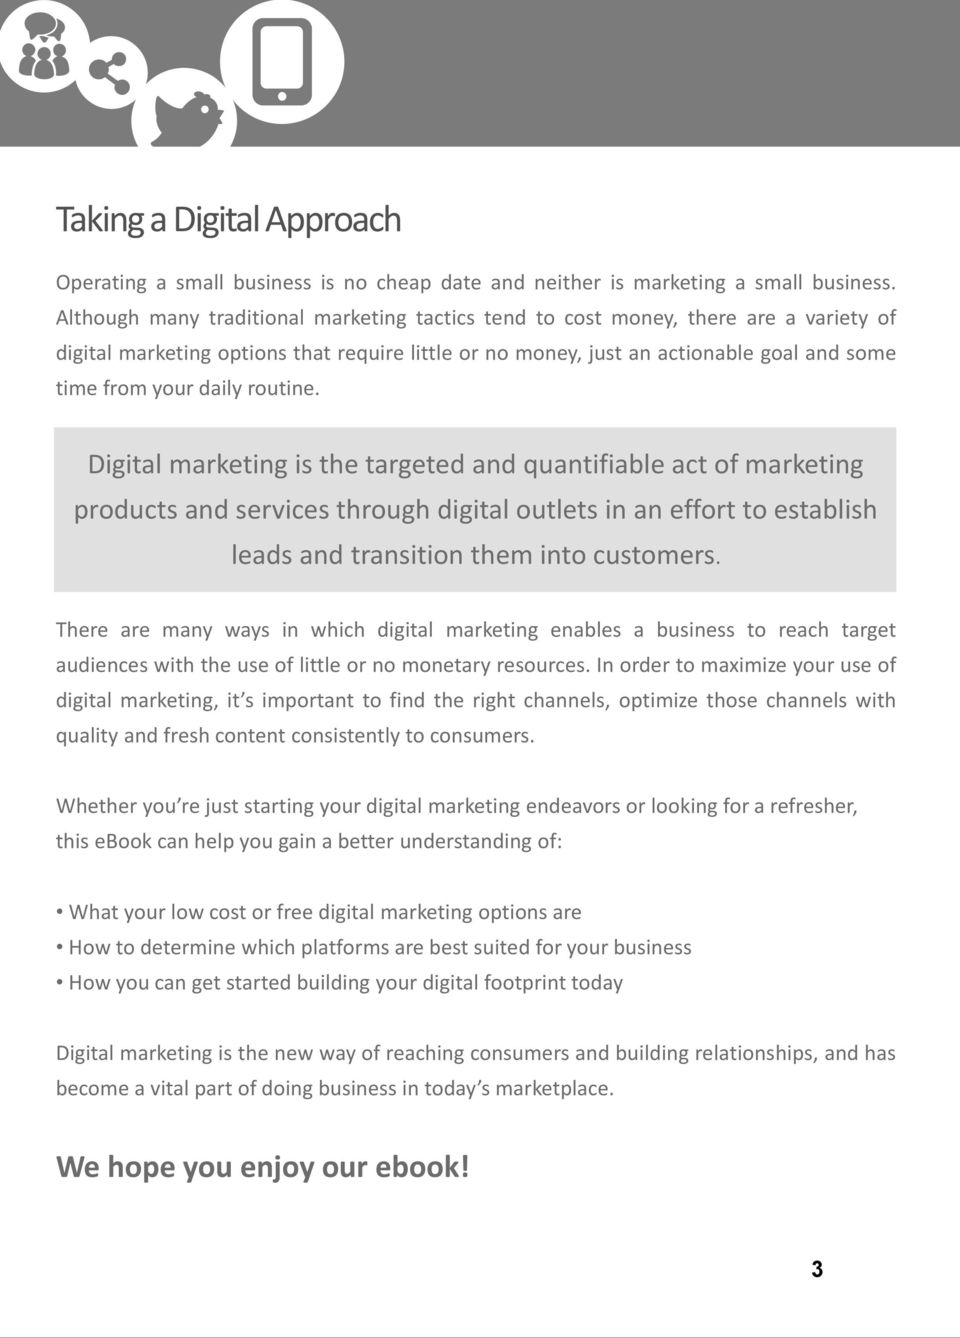 routine. Digital marketing is the targeted and quantifiable act of marketing products and services through digital outlets in an effort to establish leads and transition them into customers.